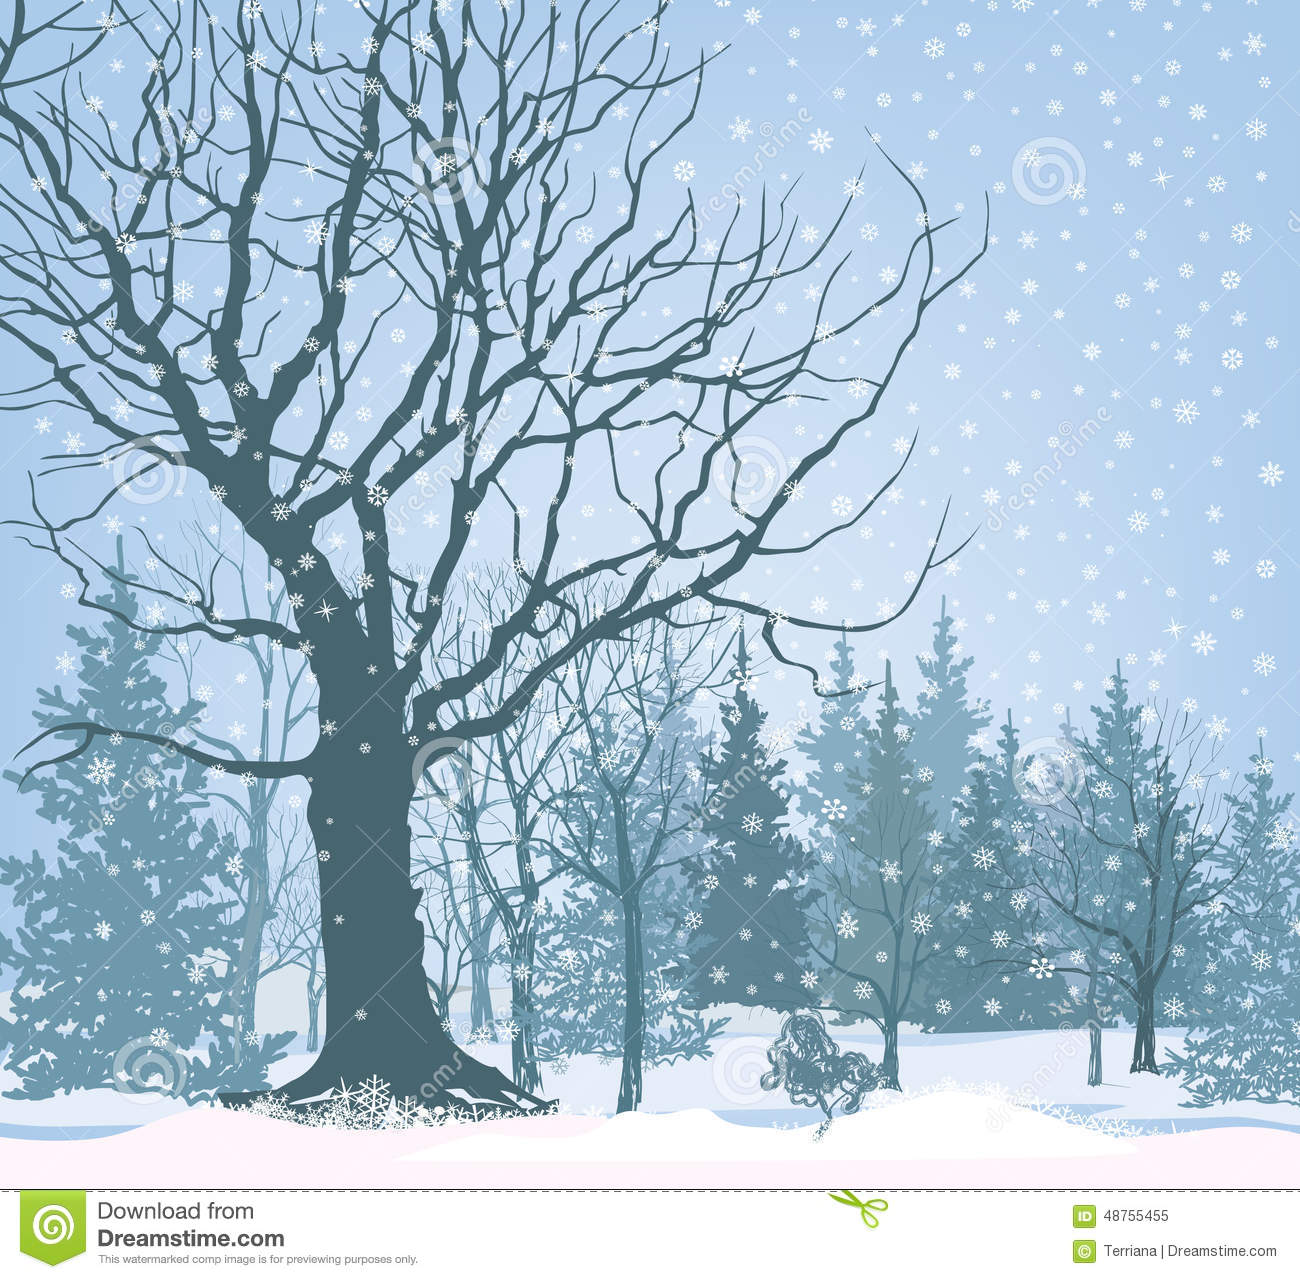 christmas snow landscape wallpaper snowy forest. Black Bedroom Furniture Sets. Home Design Ideas